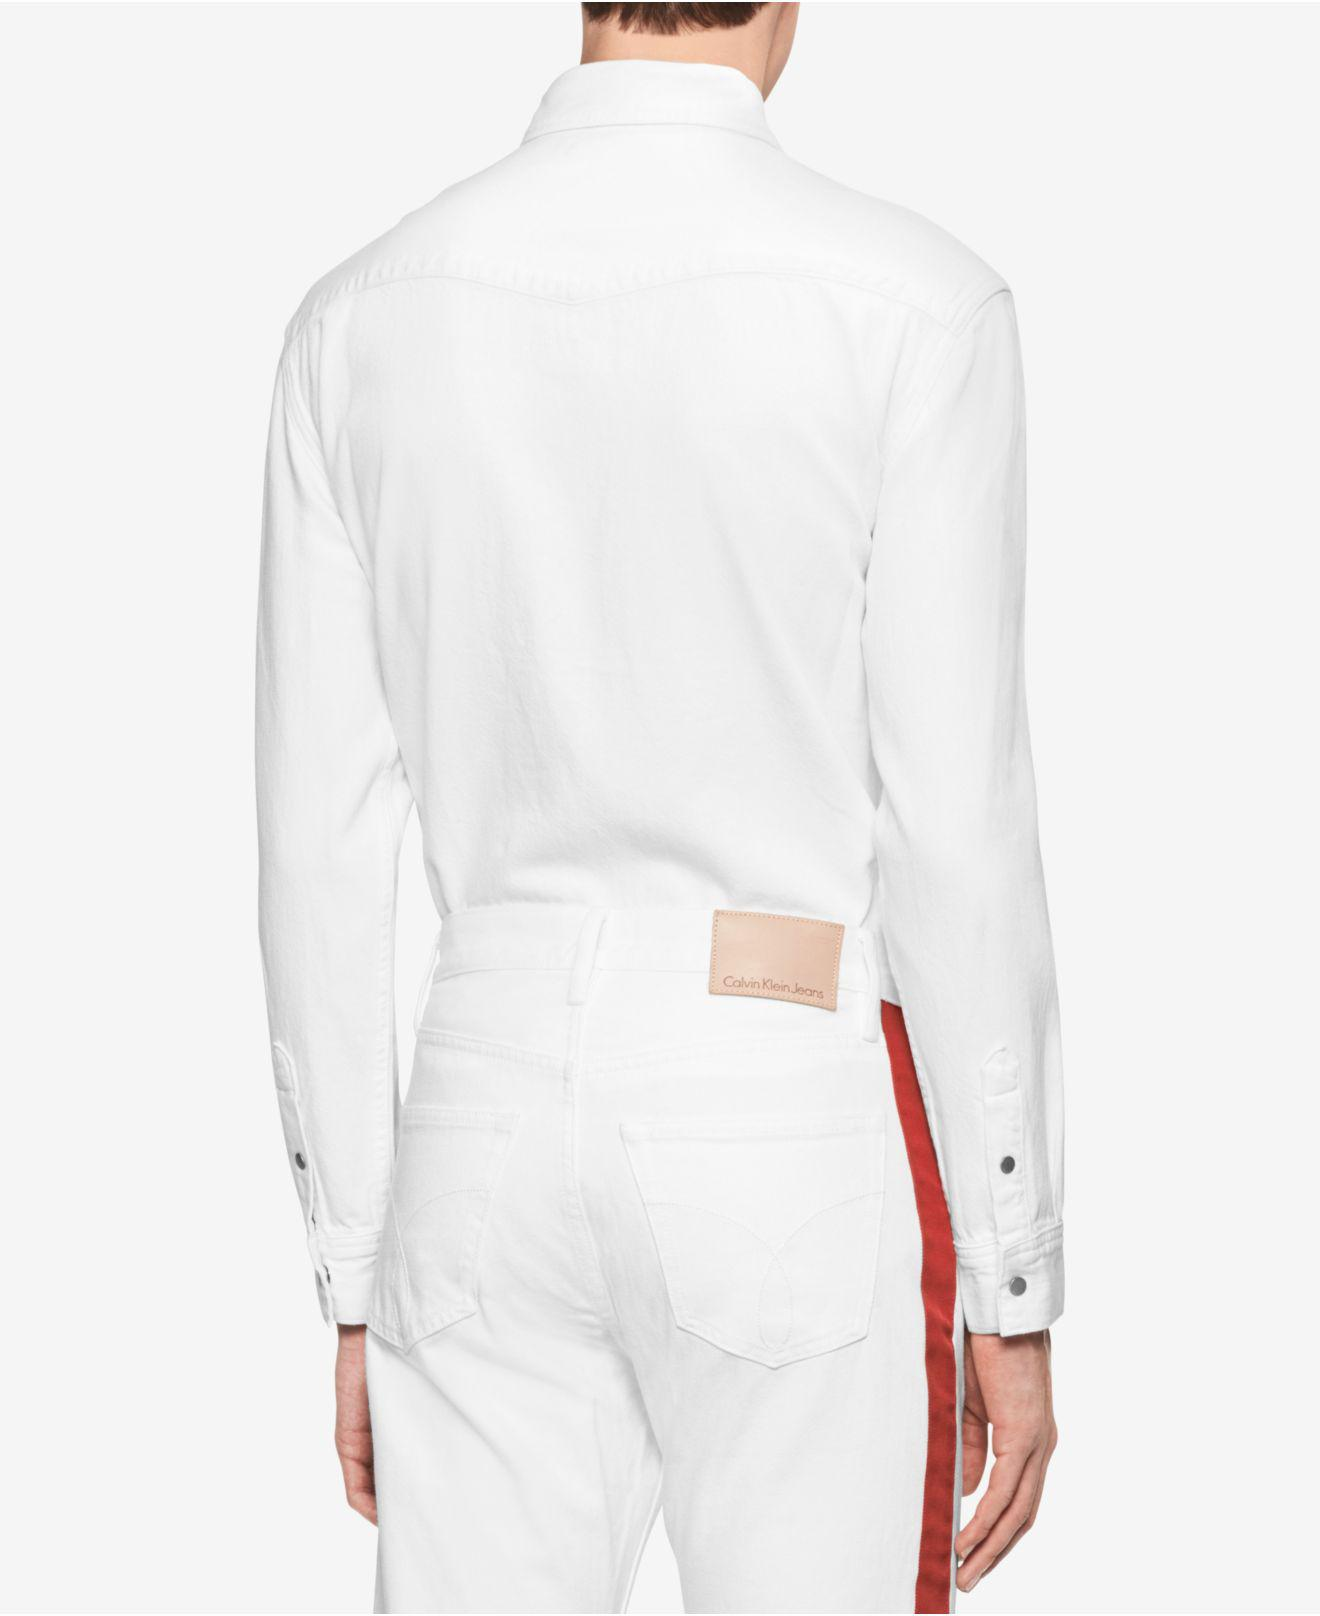 70a0a2c9a1f Lyst - Calvin Klein Archive Contrast Pocket Western Shirt in White ...